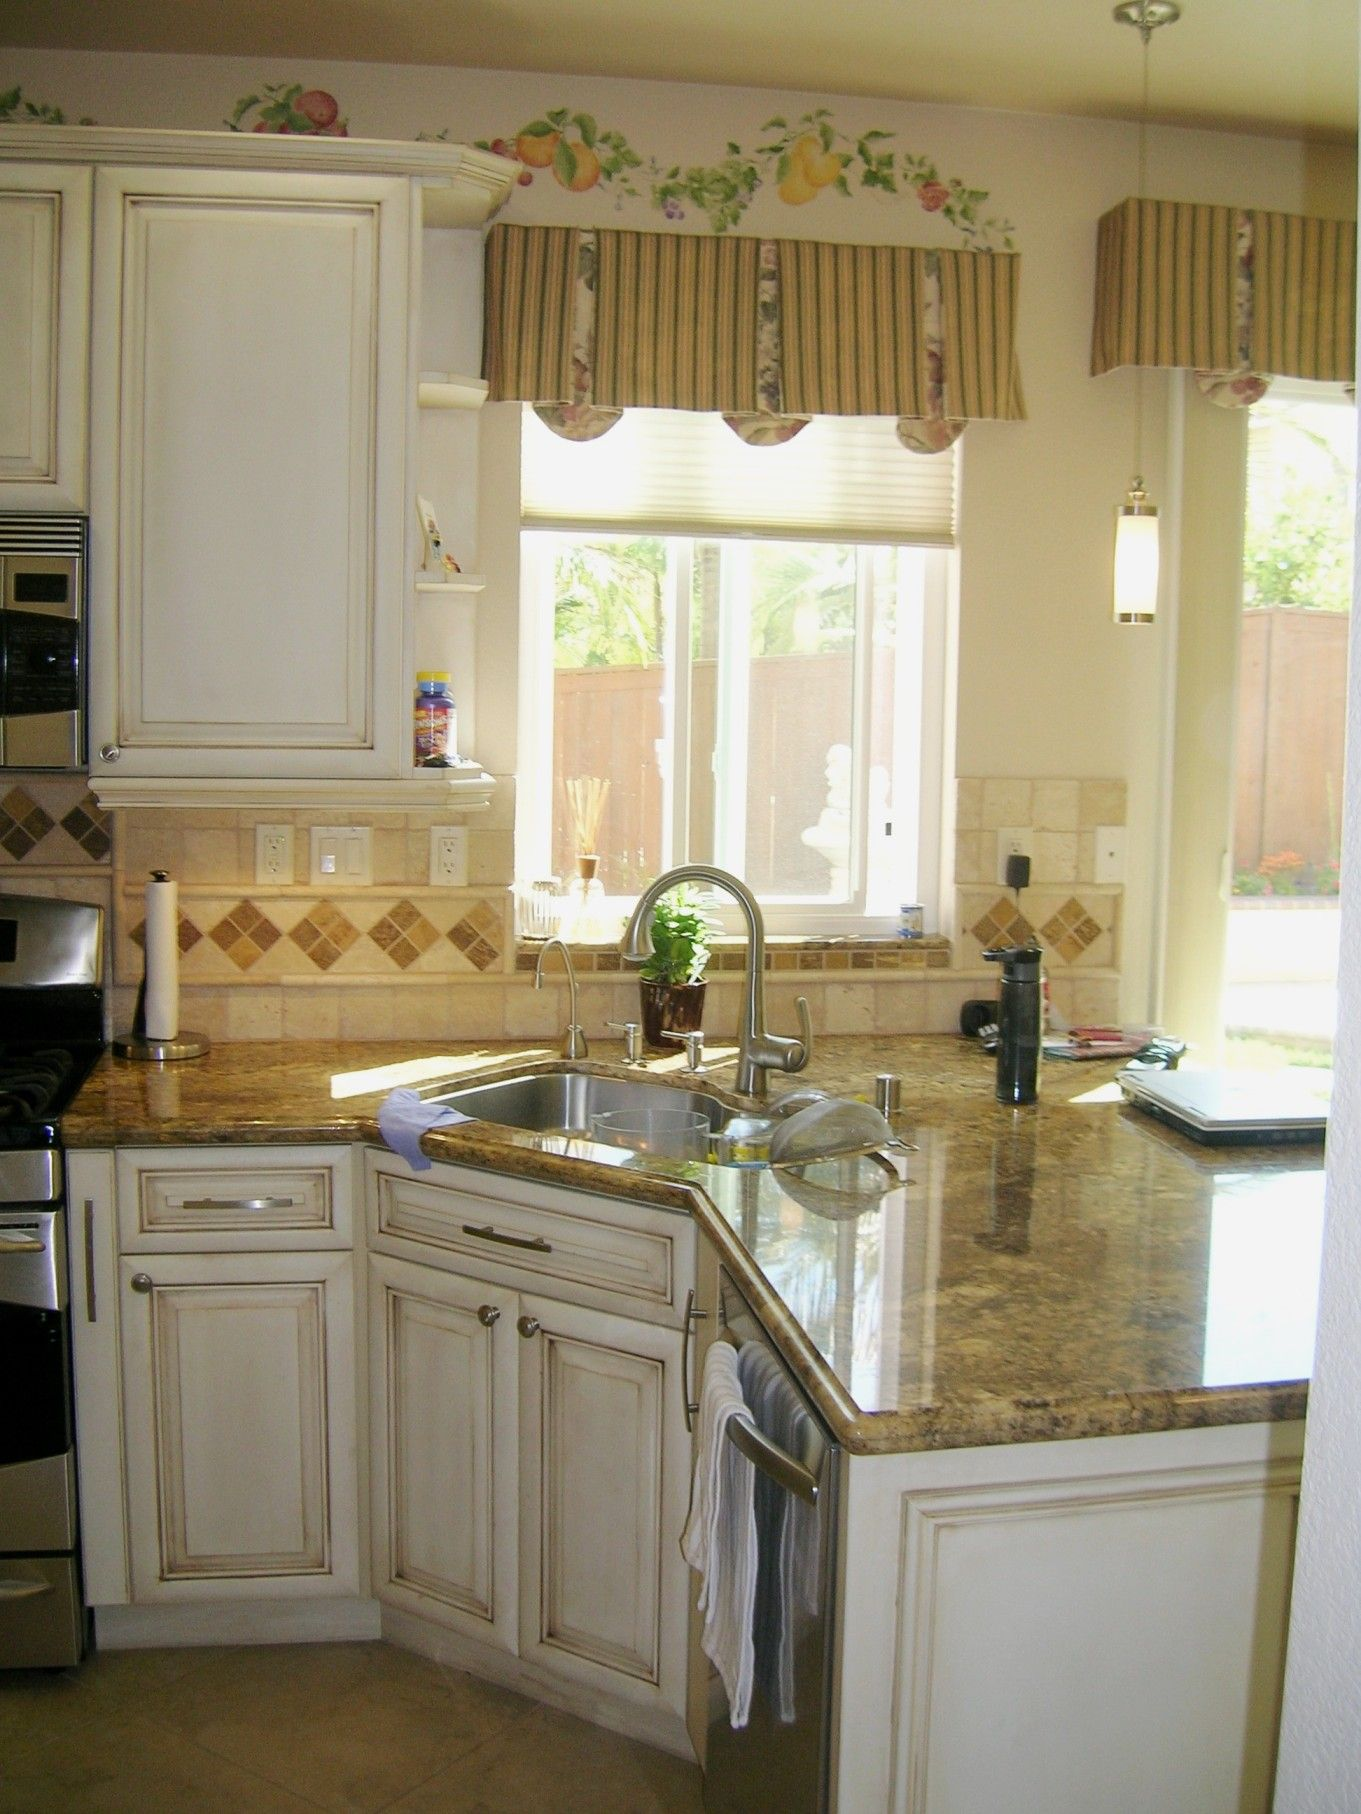 Small Kitchen Ideas!! Peninsula!!! Custom Shabby Chic Finish ... on light fixtures in kitchen, countertop in kitchen, gas cooktop in kitchen, stone backsplash in kitchen, cabinets in kitchen, dishwasher in kitchen, slate backsplash in kitchen, tiled backsplash in kitchen, skylight in kitchen, bathroom in kitchen, tile floor in kitchen, built in buffet in kitchen, granite in kitchen, plumbing in kitchen, pantry in kitchen, stainless steel in kitchen, tile flooring in kitchen, microwave in kitchen, fridge in kitchen, pot filler in kitchen,